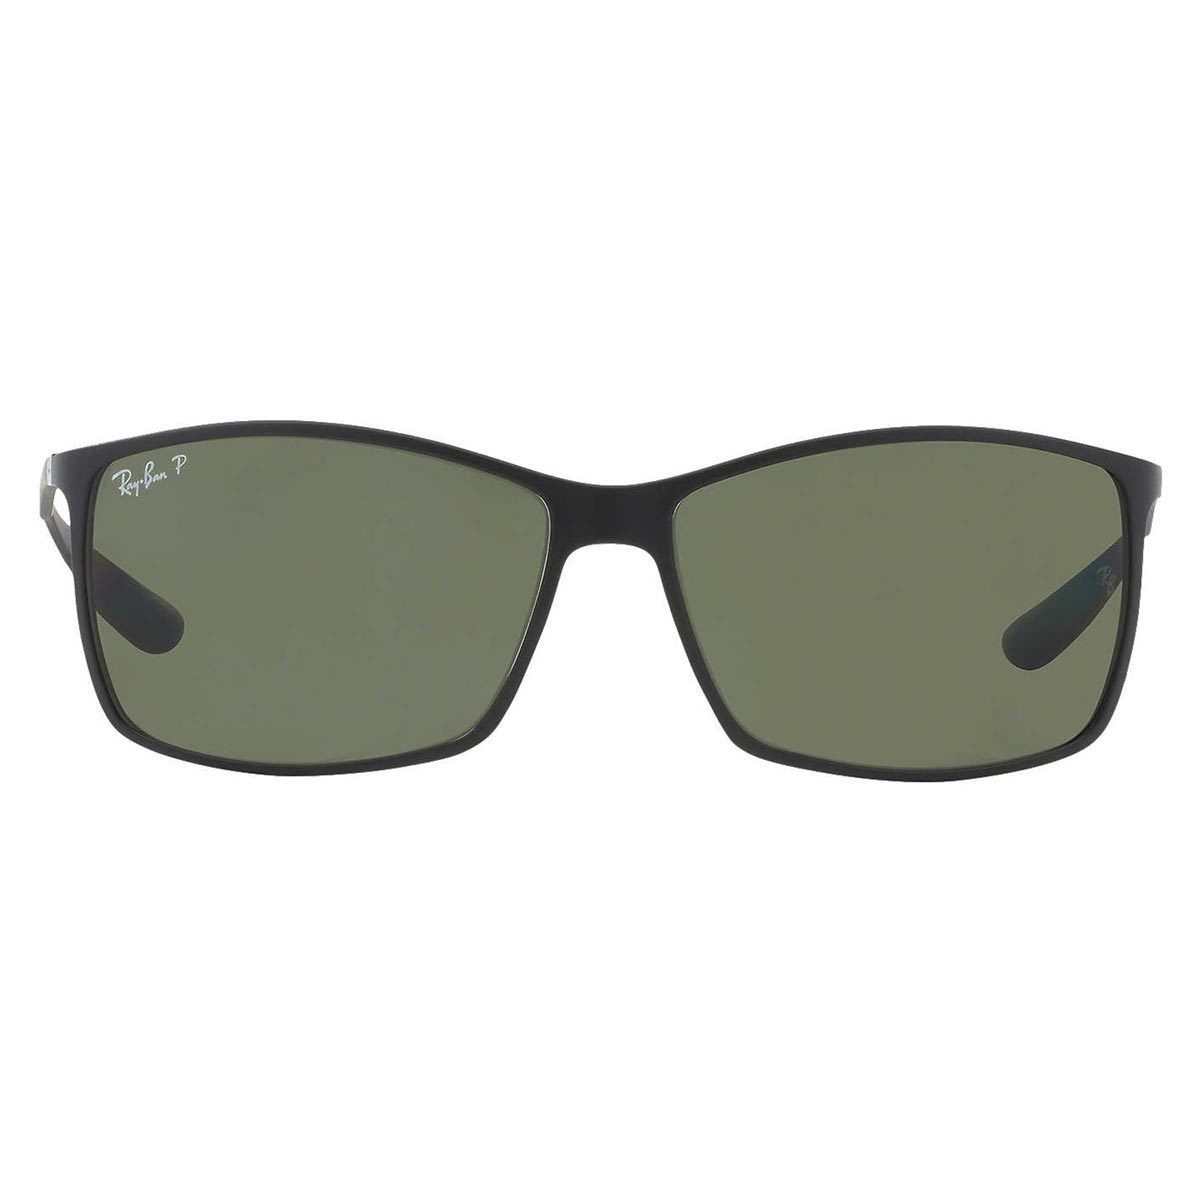 2c2d1e2d276 Shop Ray-Ban Tech Unisex Liteforce Matte Black Polarized Sunglasses - Free  Shipping Today - Overstock - 8099575